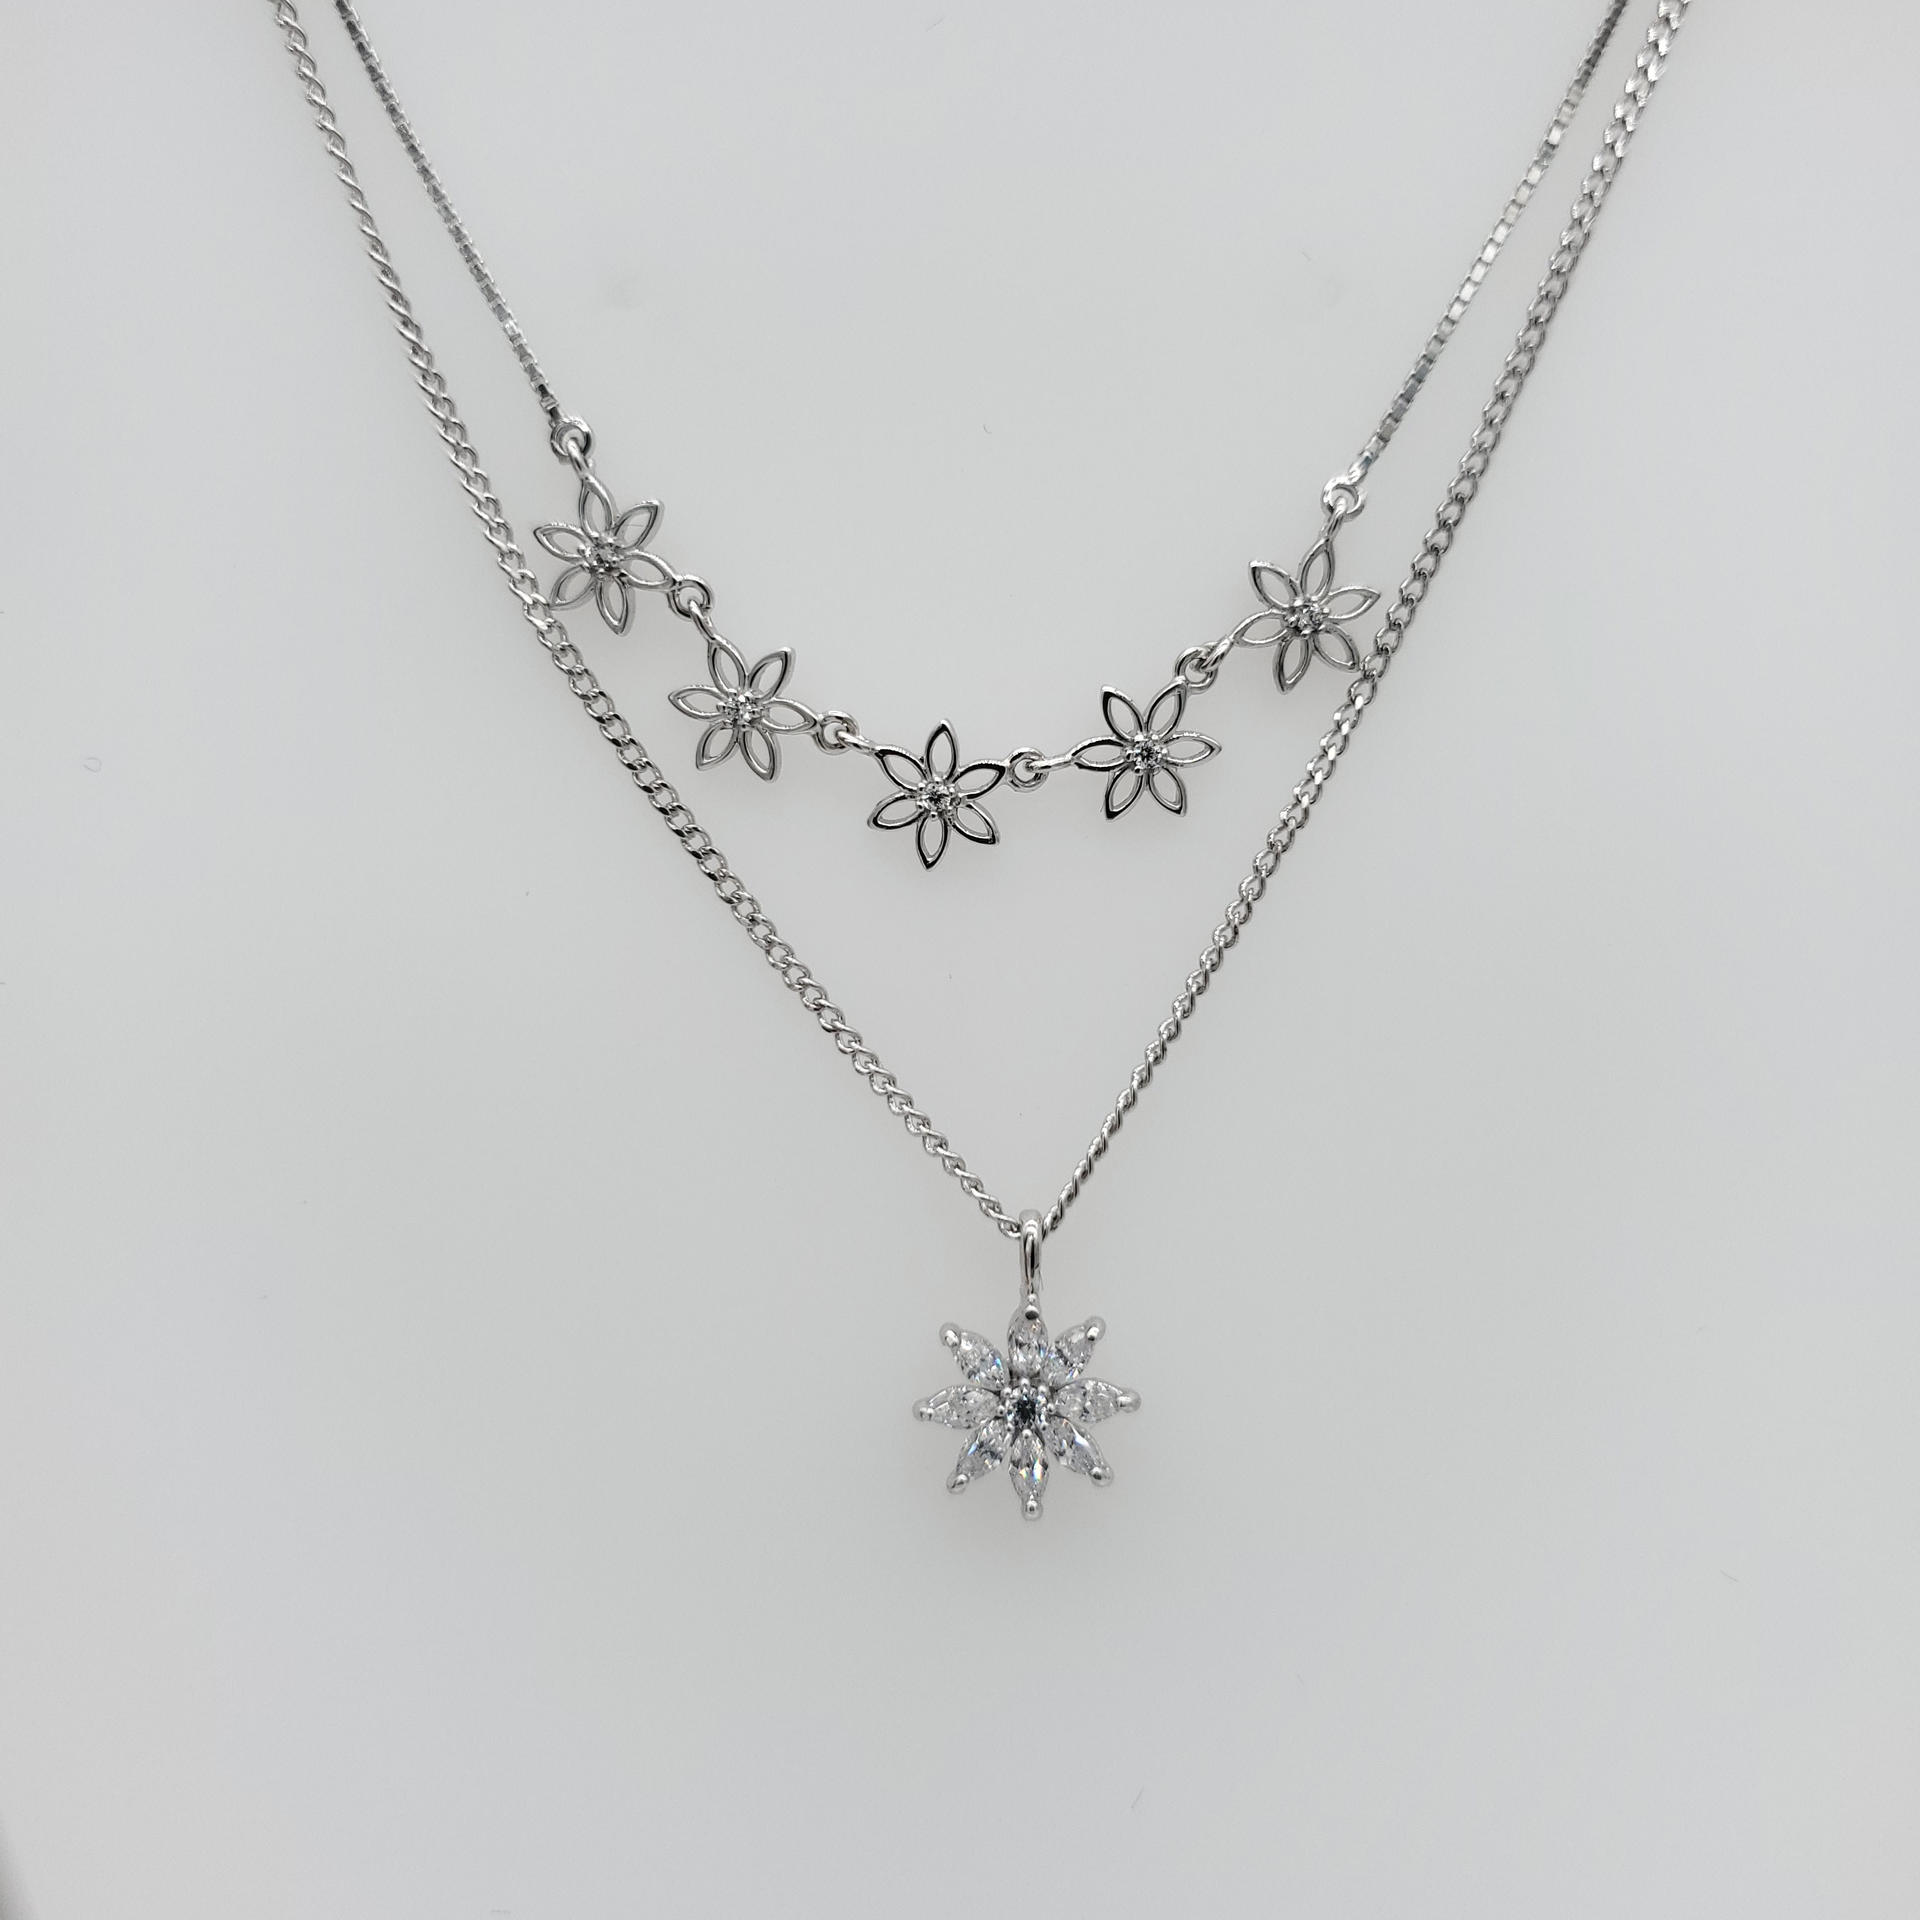 Fashion Hollow Design Tracery White Gold Cz Flower Chains Necklace